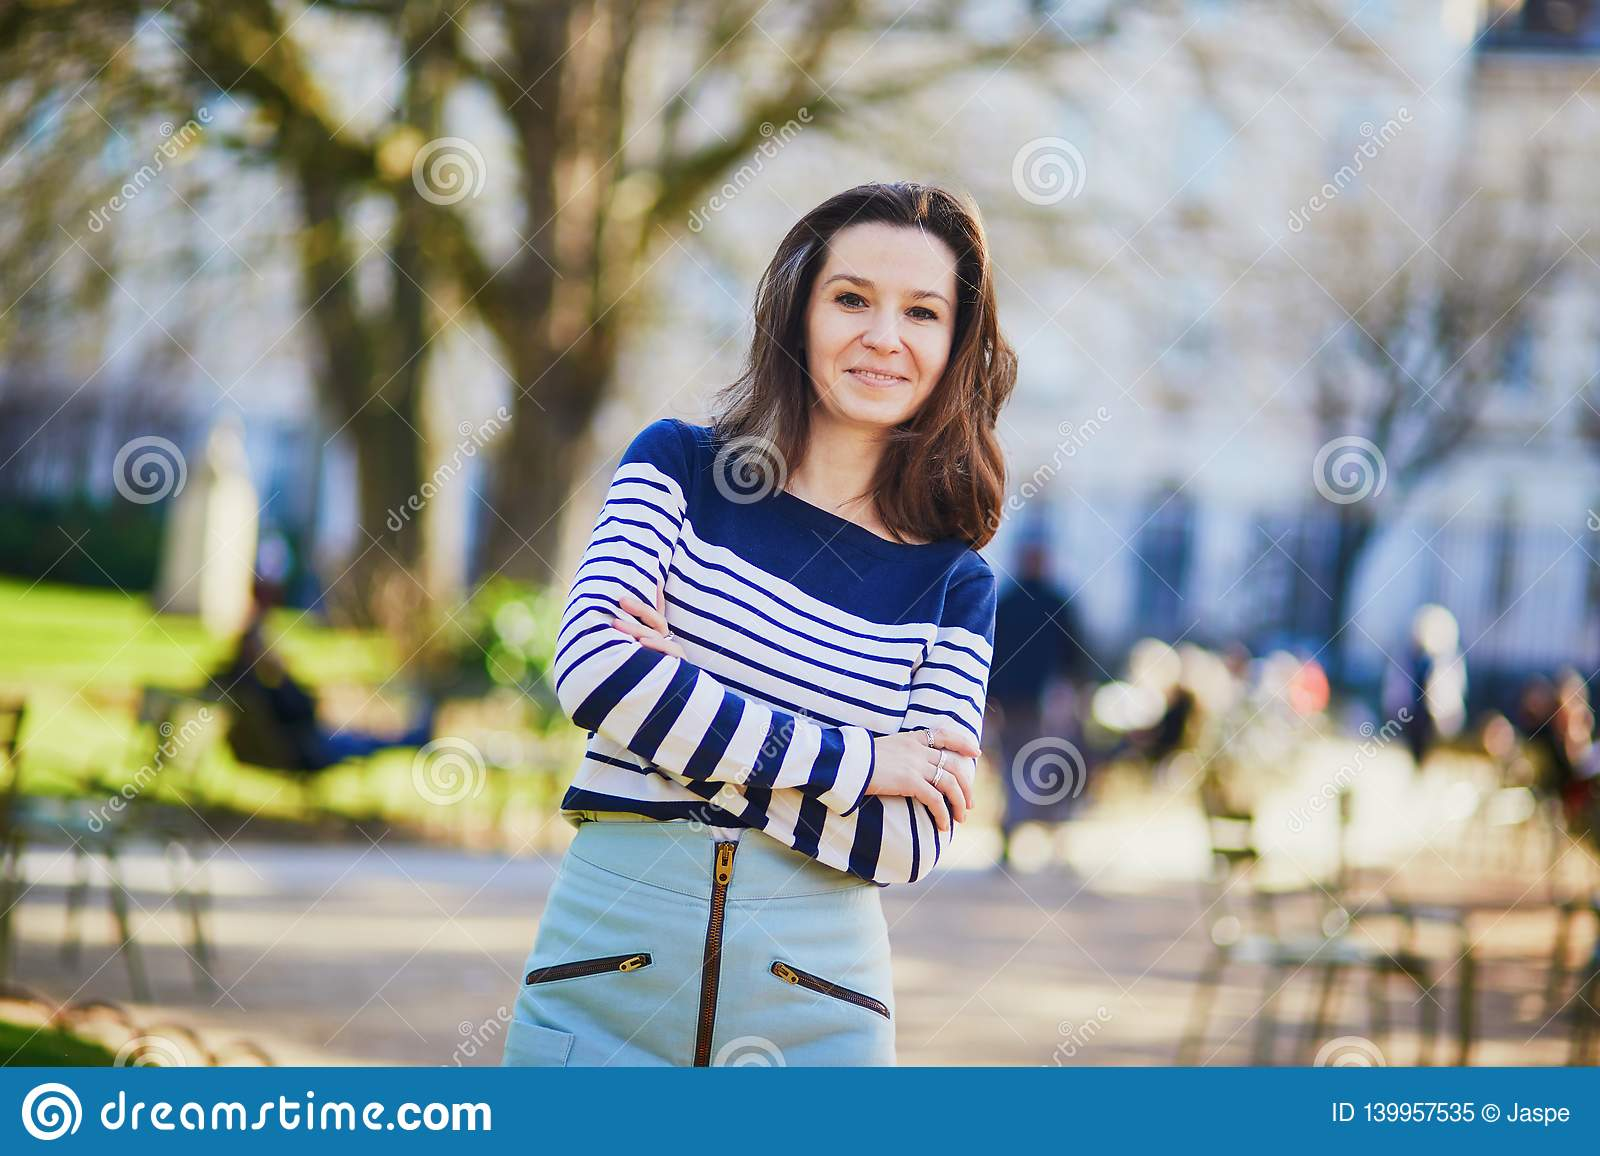 Happy young woman walking in the Luxembourg garden of Paris